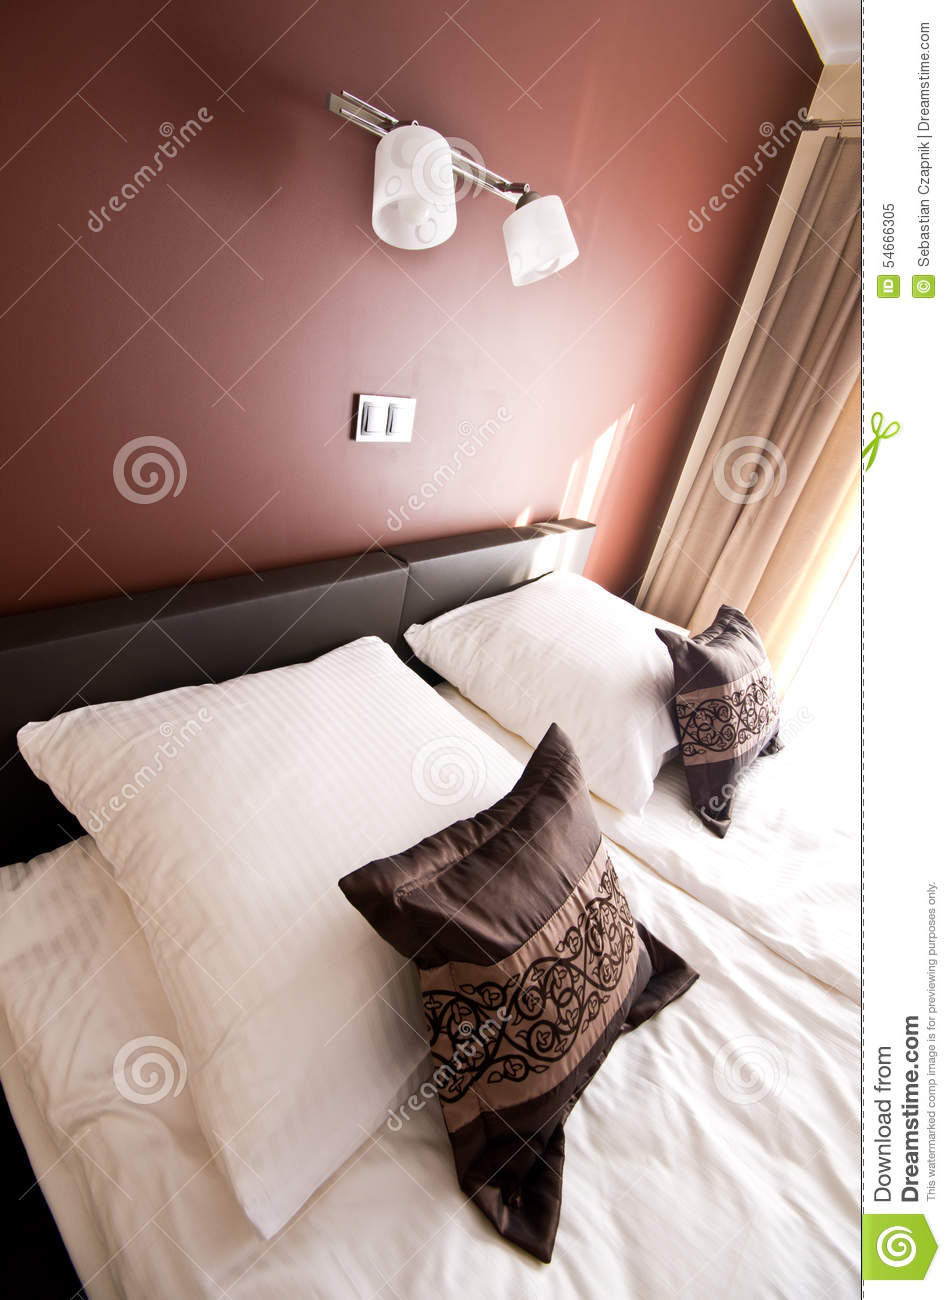 Brown pillow on bed with wall lighting stock photo image for Wall pillow for bed